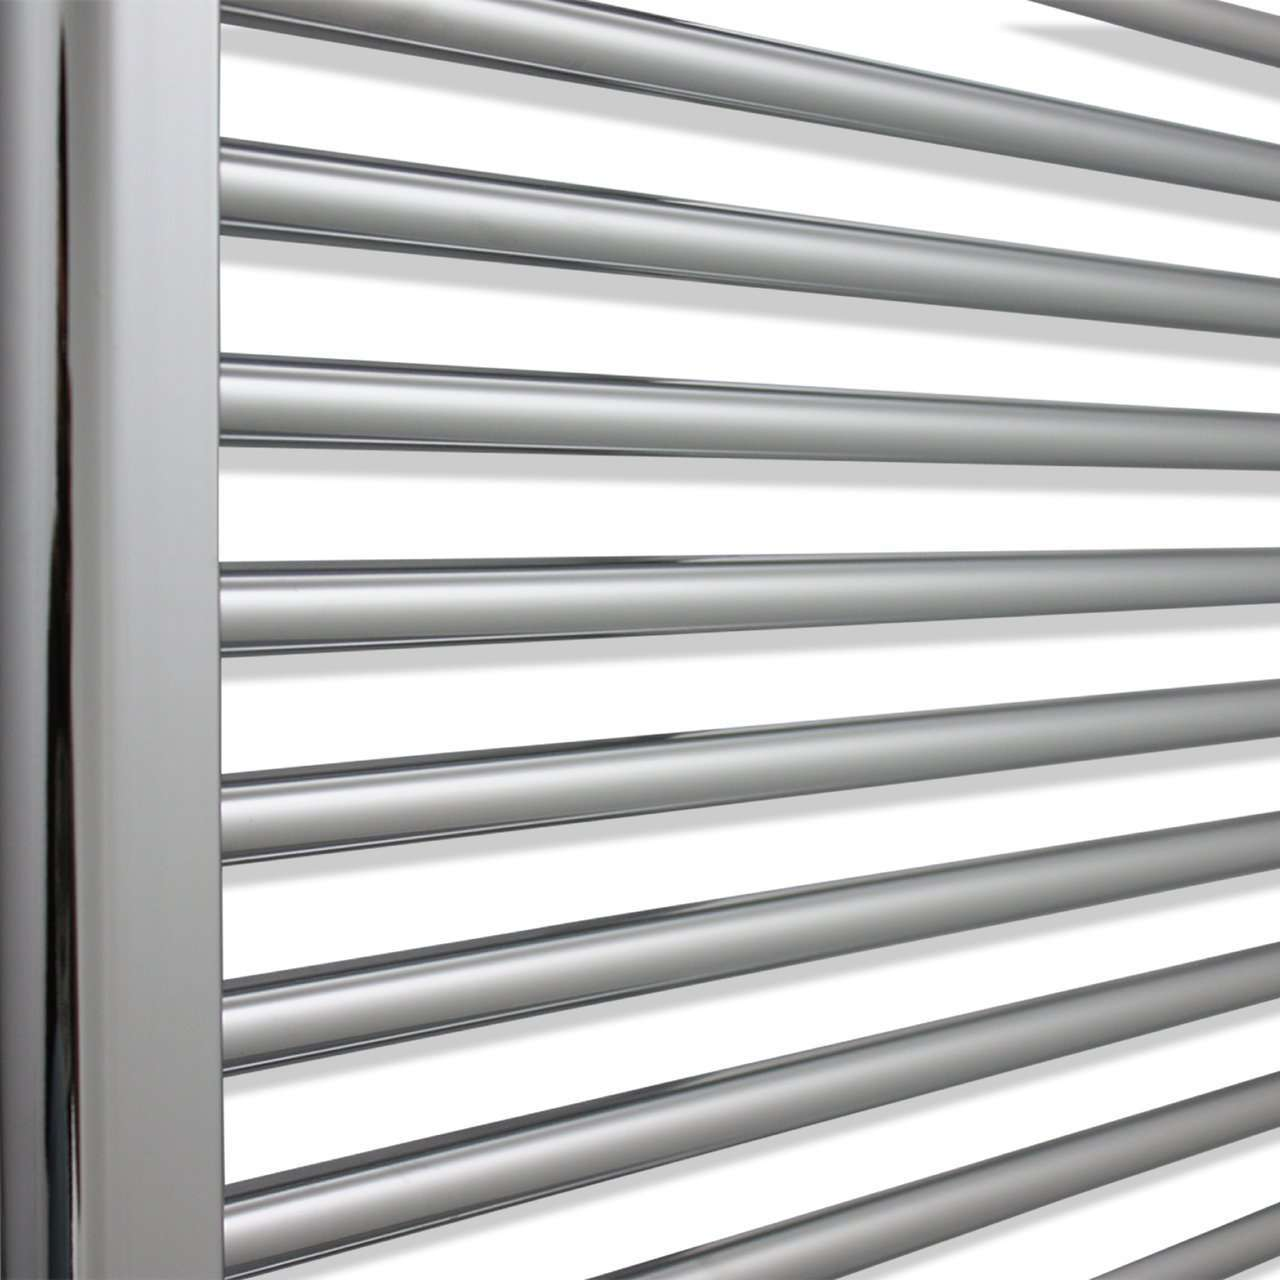 700mm Wide 600mm High Curved Chrome Heated Towel Rail Radiator HTR